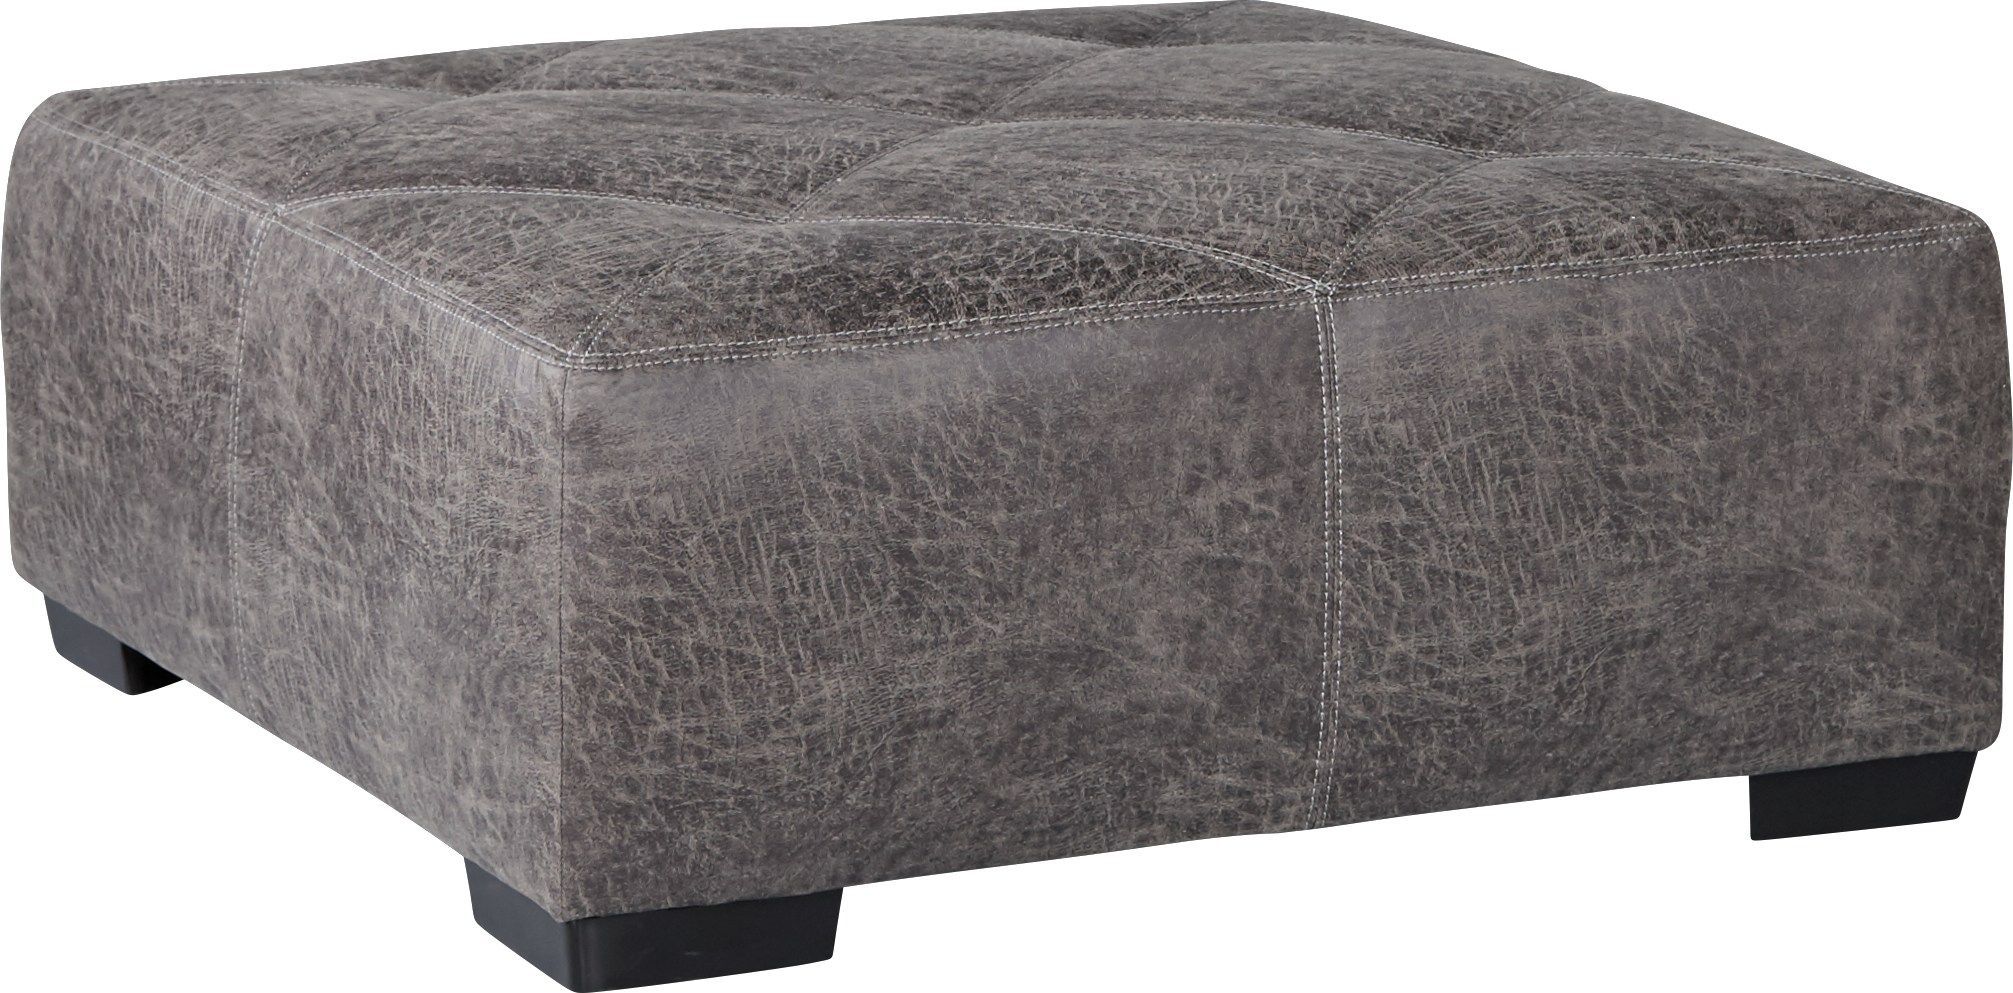 Amazing Deca Drive Gray Cocktail Ottoman Rtg Uphostery In 2019 Gamerscity Chair Design For Home Gamerscityorg